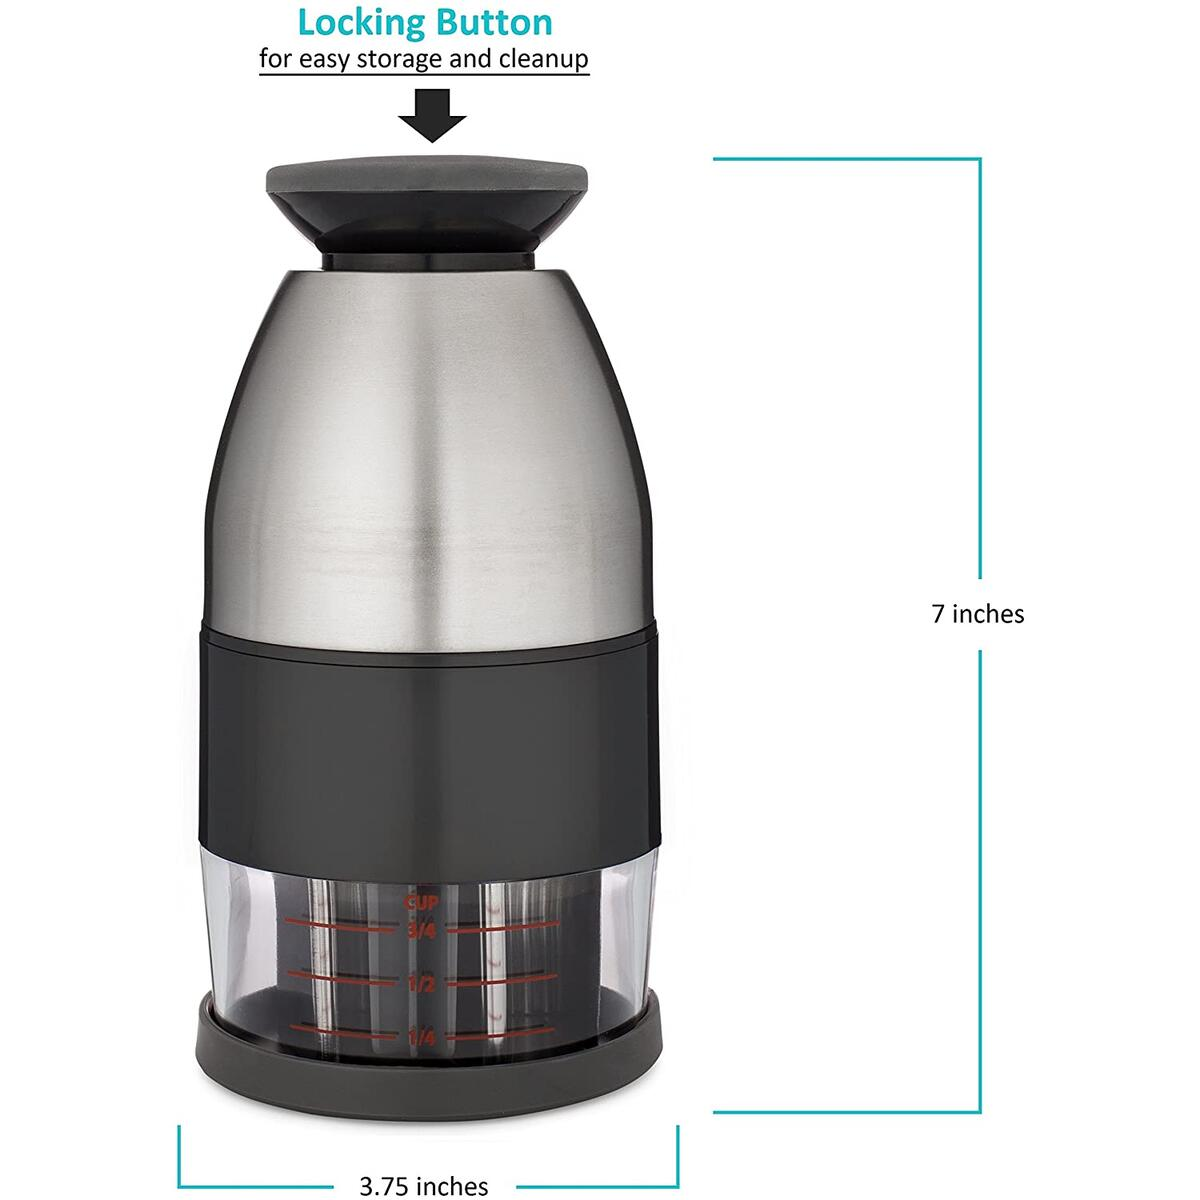 Limit 1 per Amazon  Account - Vivaant Food Chopper - Manual Slicer Dicer Mincer - Time Saver For Vegetables Salads Onions Garlic Nuts And More - Stainless Steel Commercial Quality With Easy-Clean Design